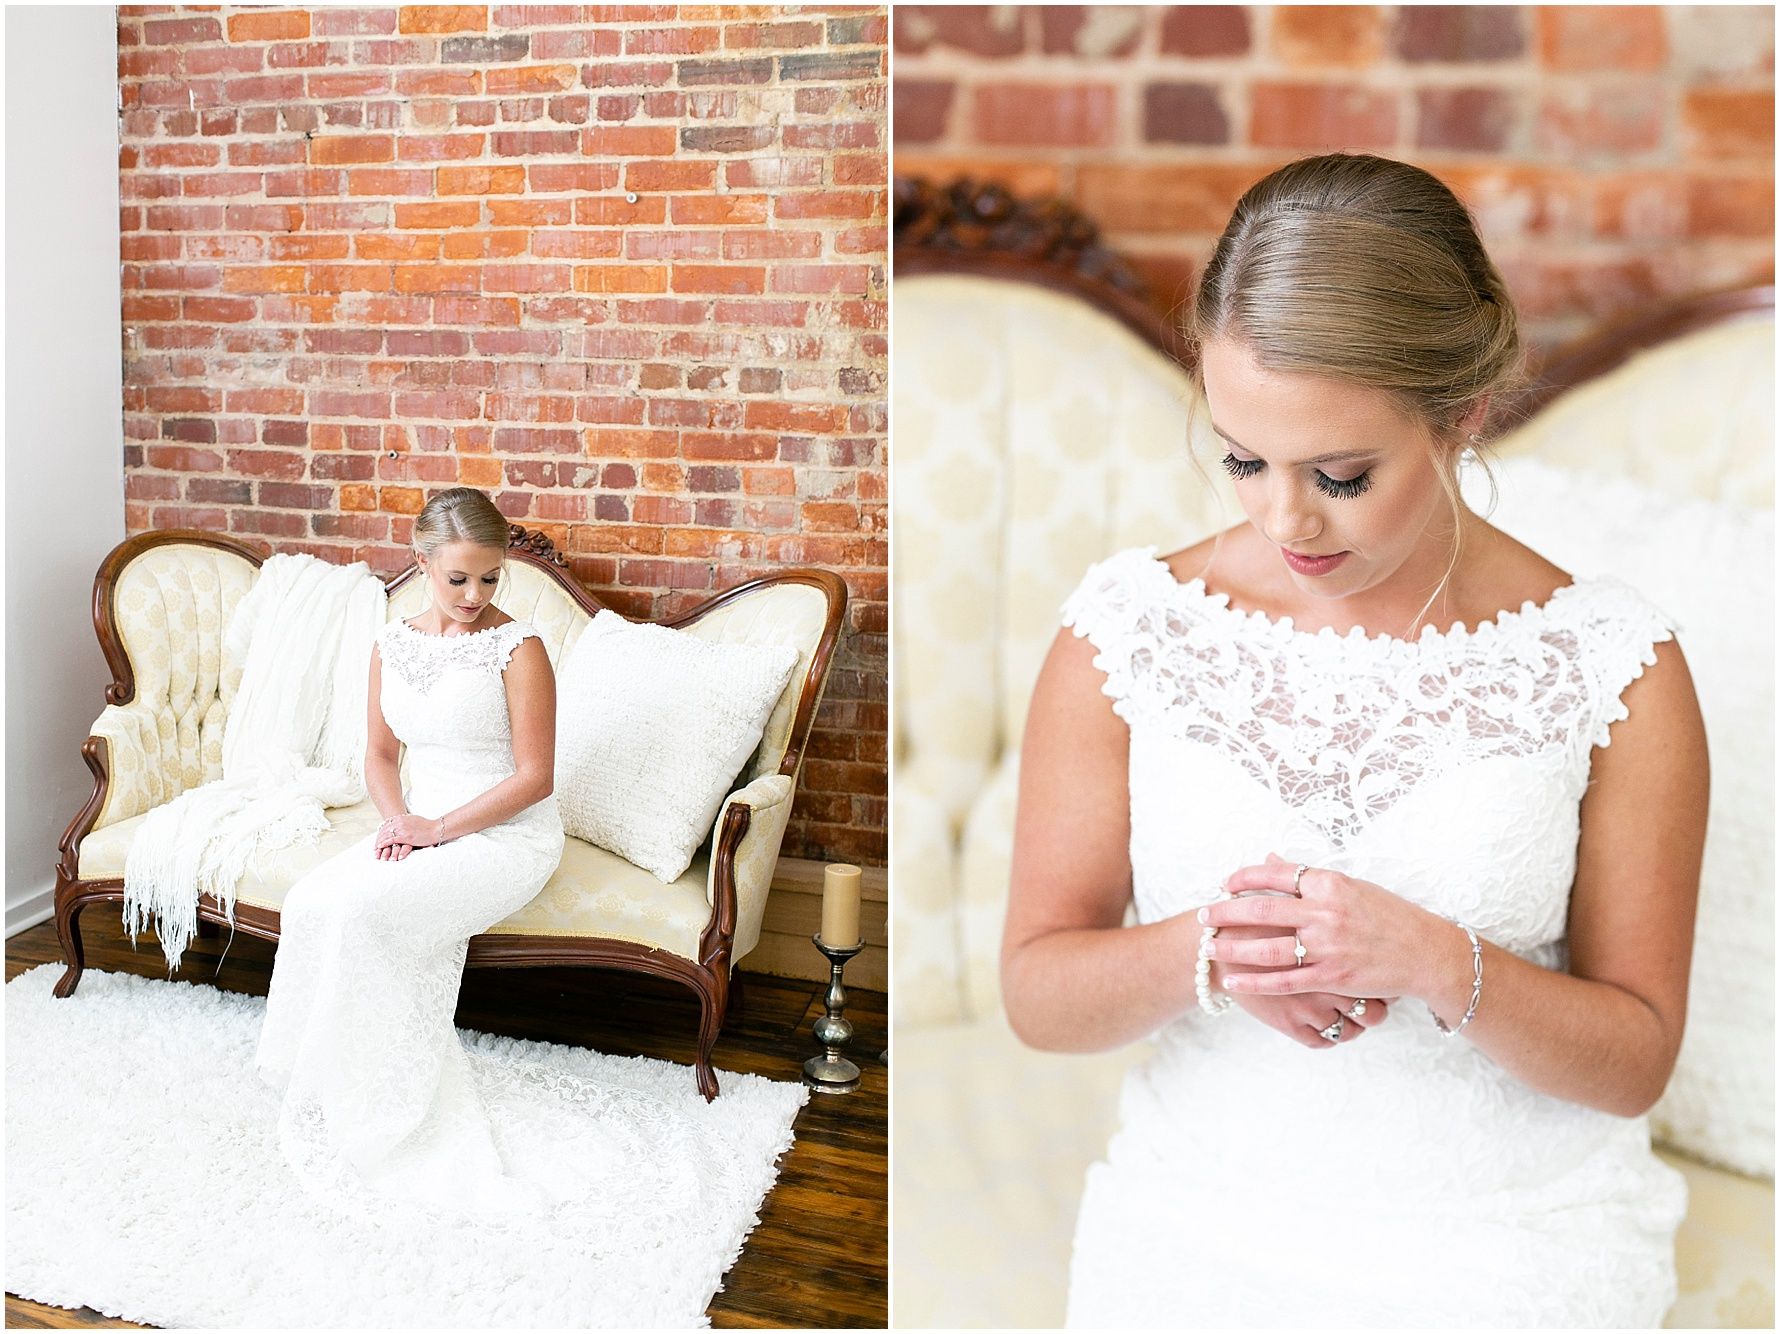 studio at wharf hill bridal portrait, Jessica Ryan photography, southern bride